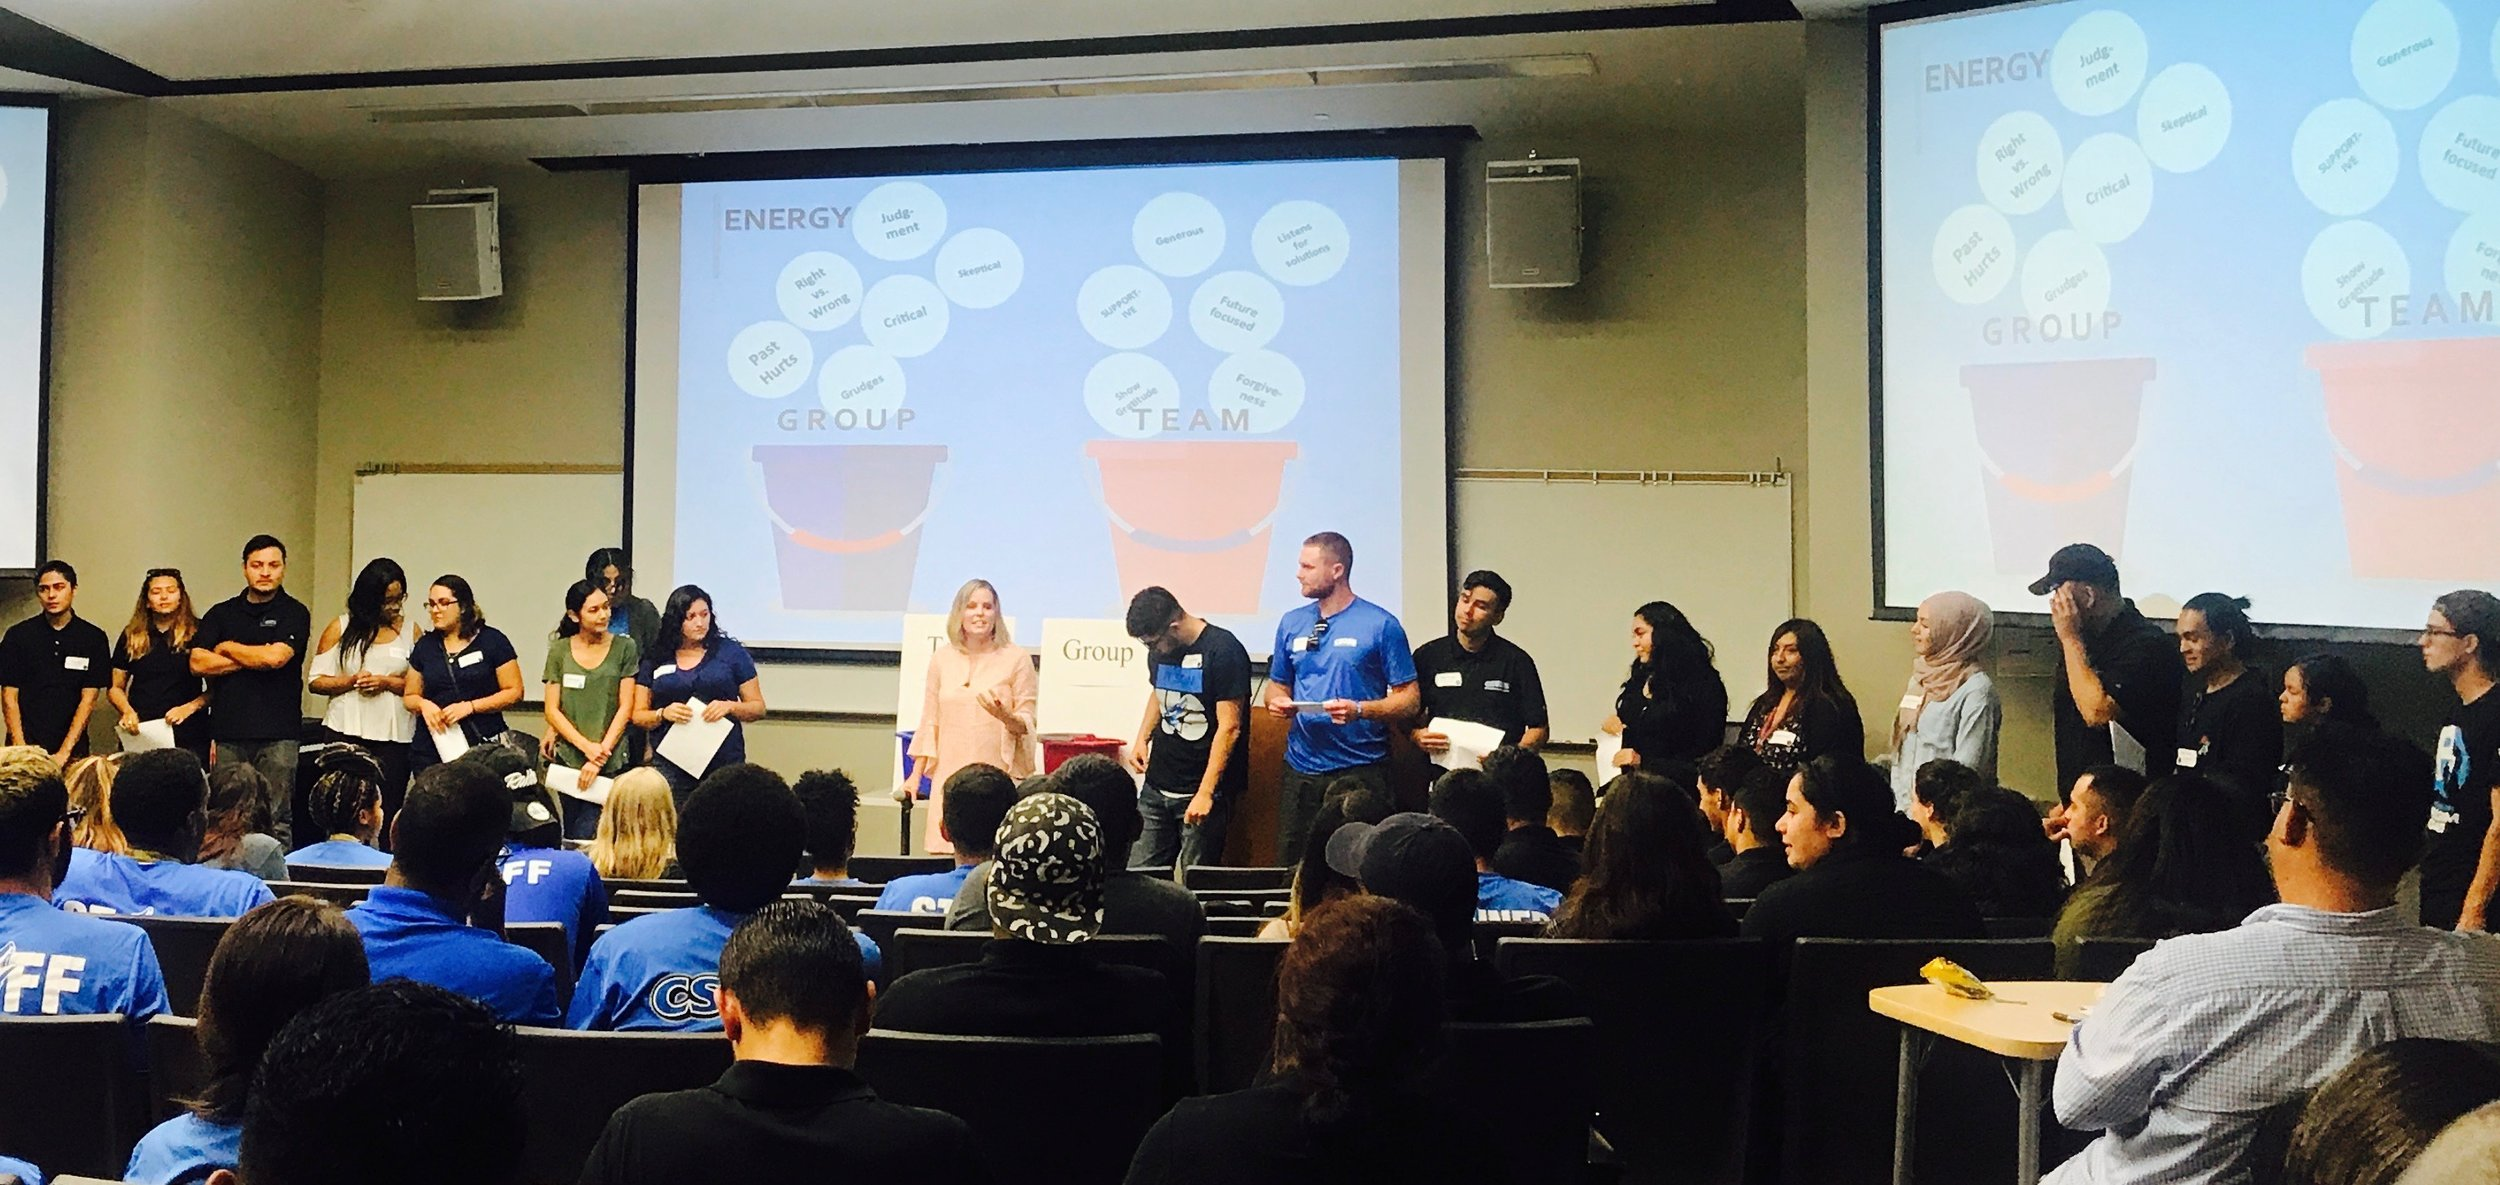 Susan doing a Group to TEAM keynote for over 200 student workers at Cal State San Bernardino last month.